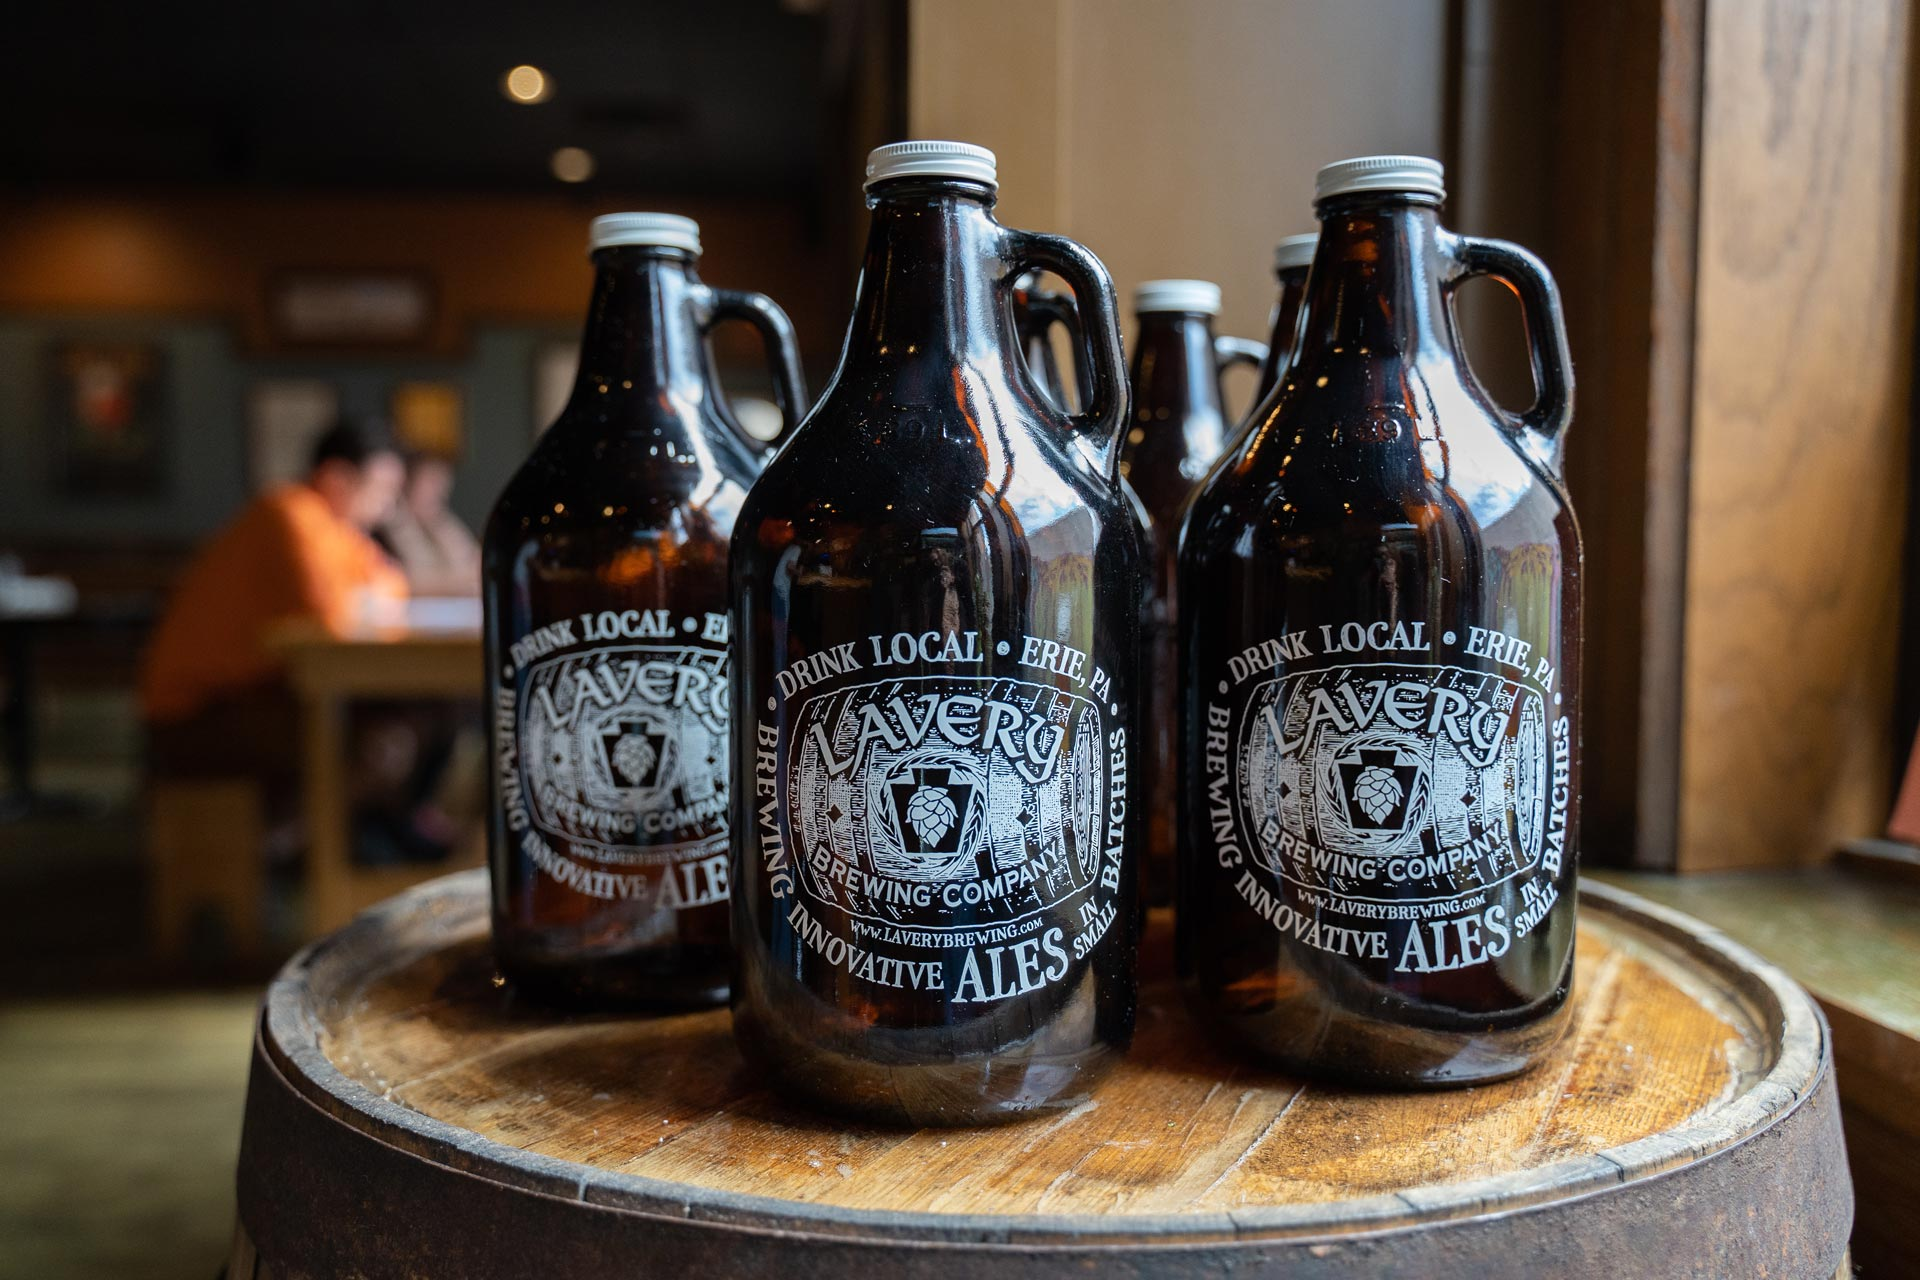 Growlers at Lavery Brewing Co. in Erie, Pennsylvania